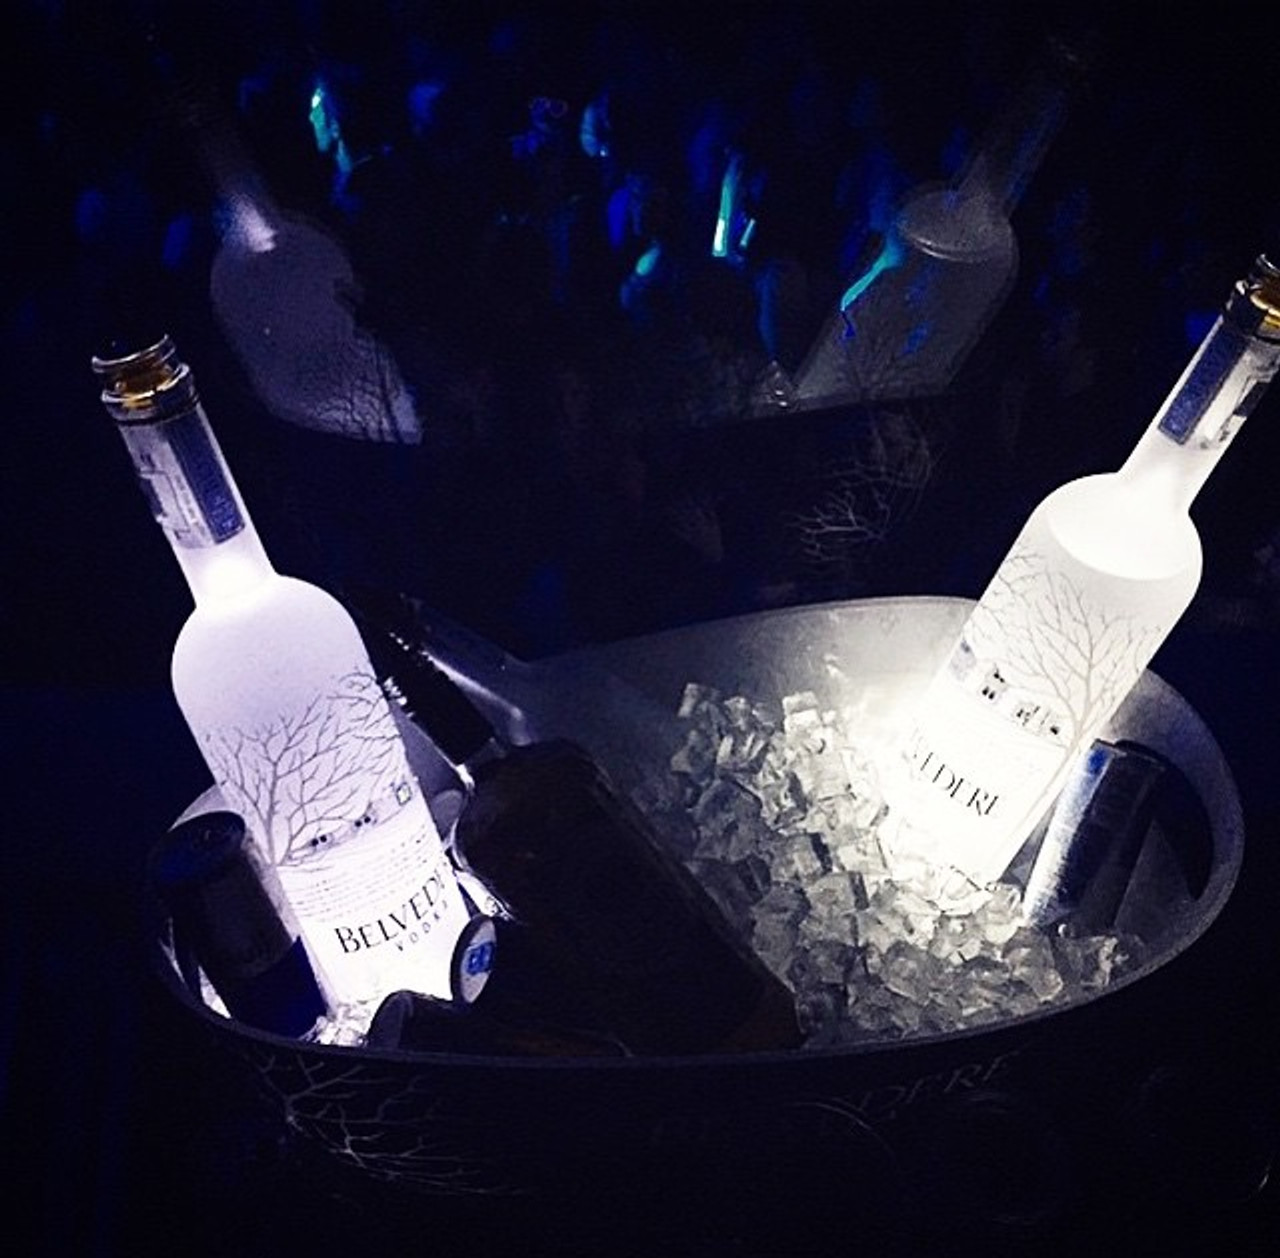 Bottle pads_Bottle_Glorifier_coaster_Pad_Glow_Super bright_LED_Sticker_Glorifier_Clam shell_6_LED_Version_new_waterproof_light up_bottle bottle_glow_light up bottle_LED bottle_Blinking_flashing_ Nightclubshop